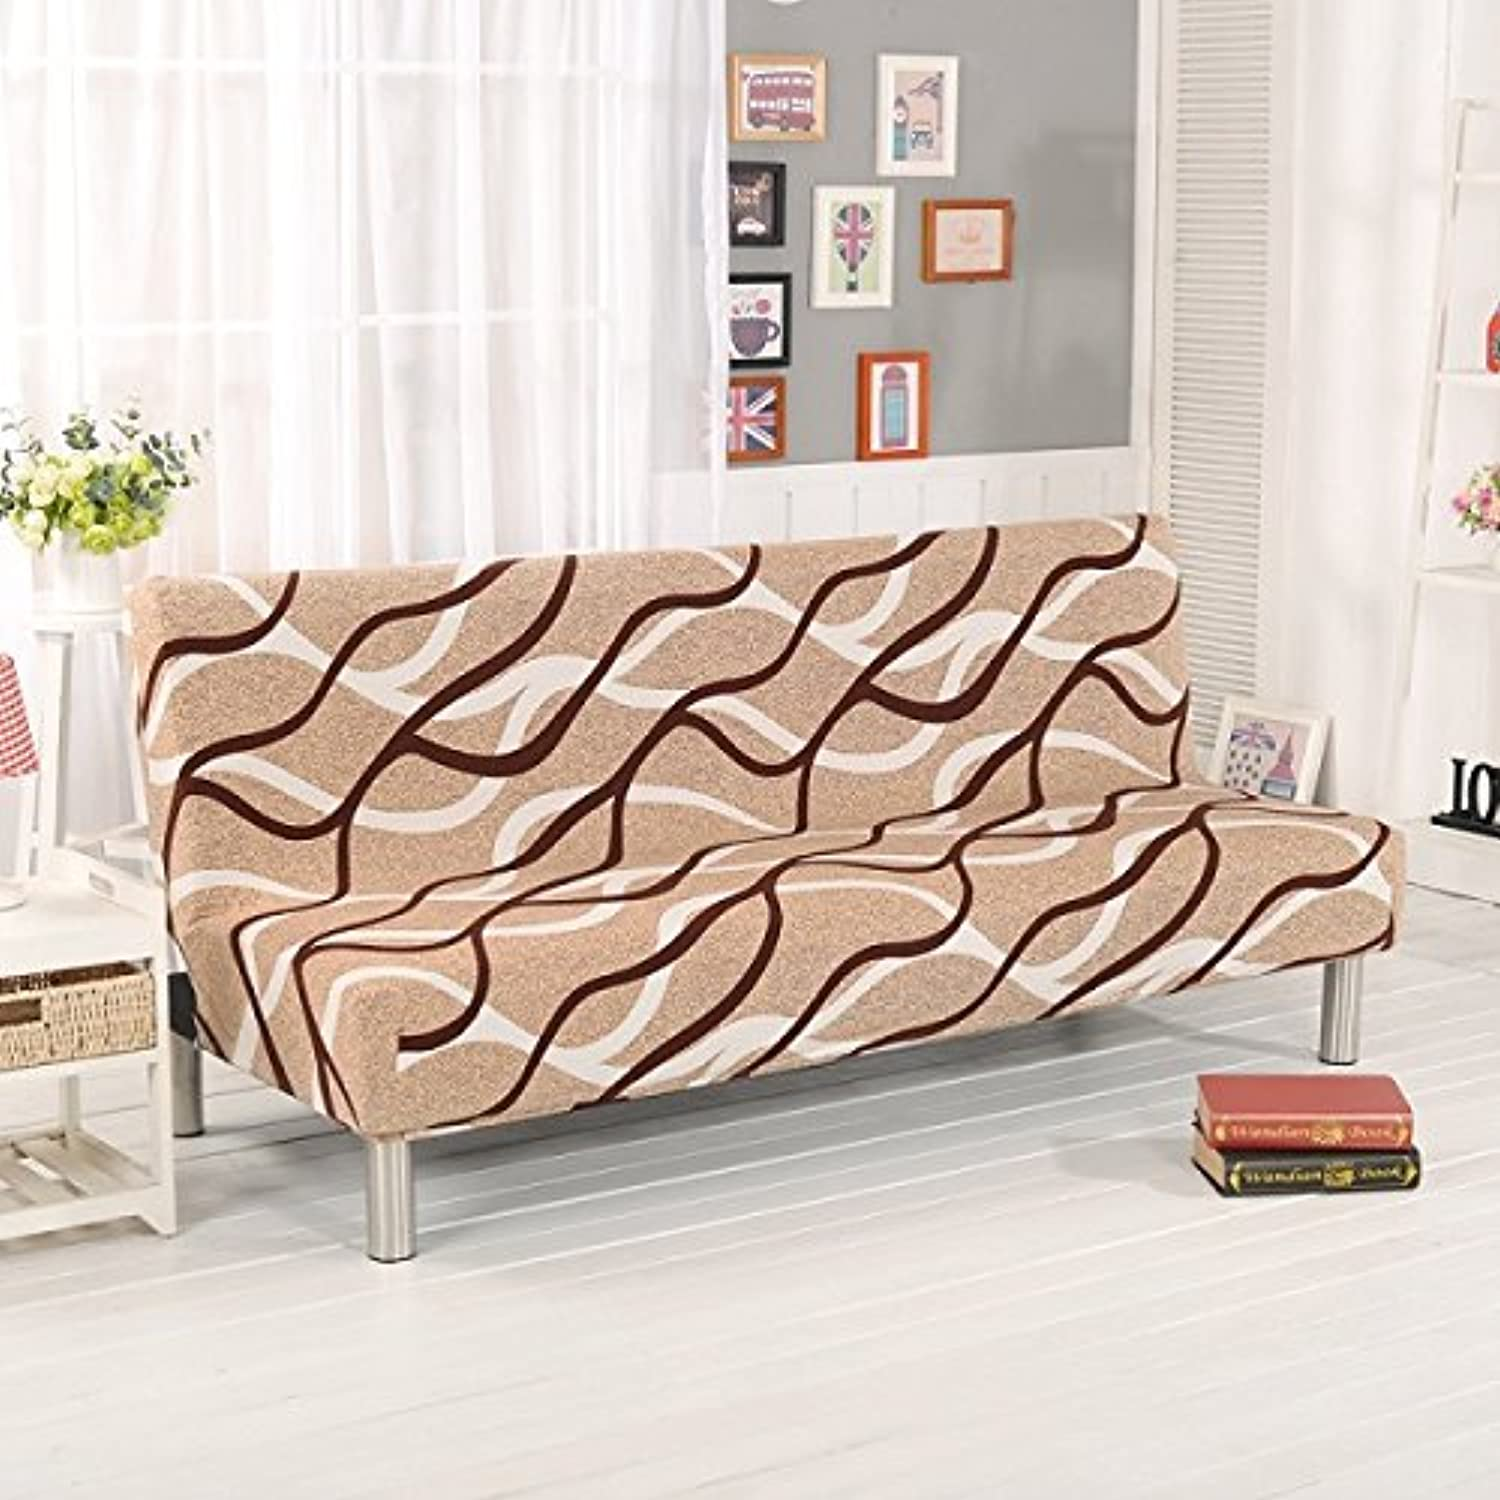 Farmerly Modern Without Armrest Sofa Cover Multifunction Sofa Slipcover Big Elastic Fabric Anti-Mite 160-210cm bluee Star Sofa Bed Covers   17, 160-195cm